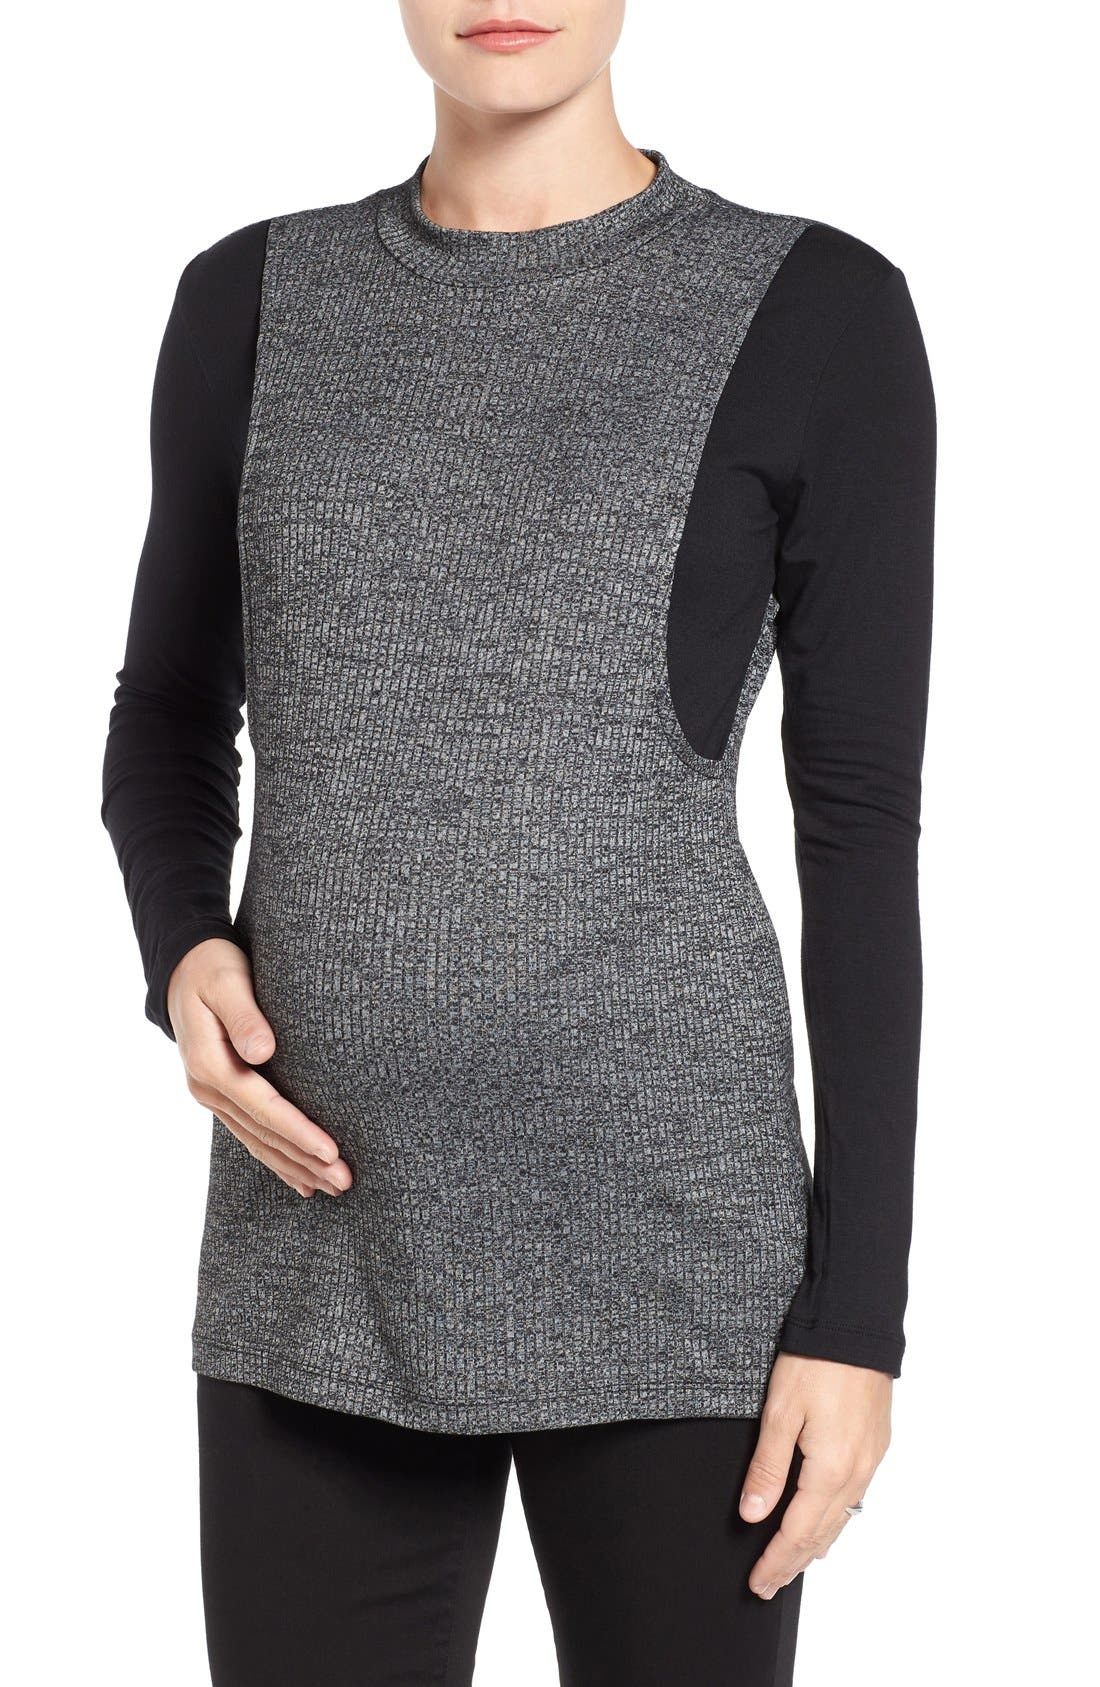 'Brie' Colorblock Maternity/Nursing Sweater,                             Main thumbnail 1, color,                             CHARCOAL/ BLACK